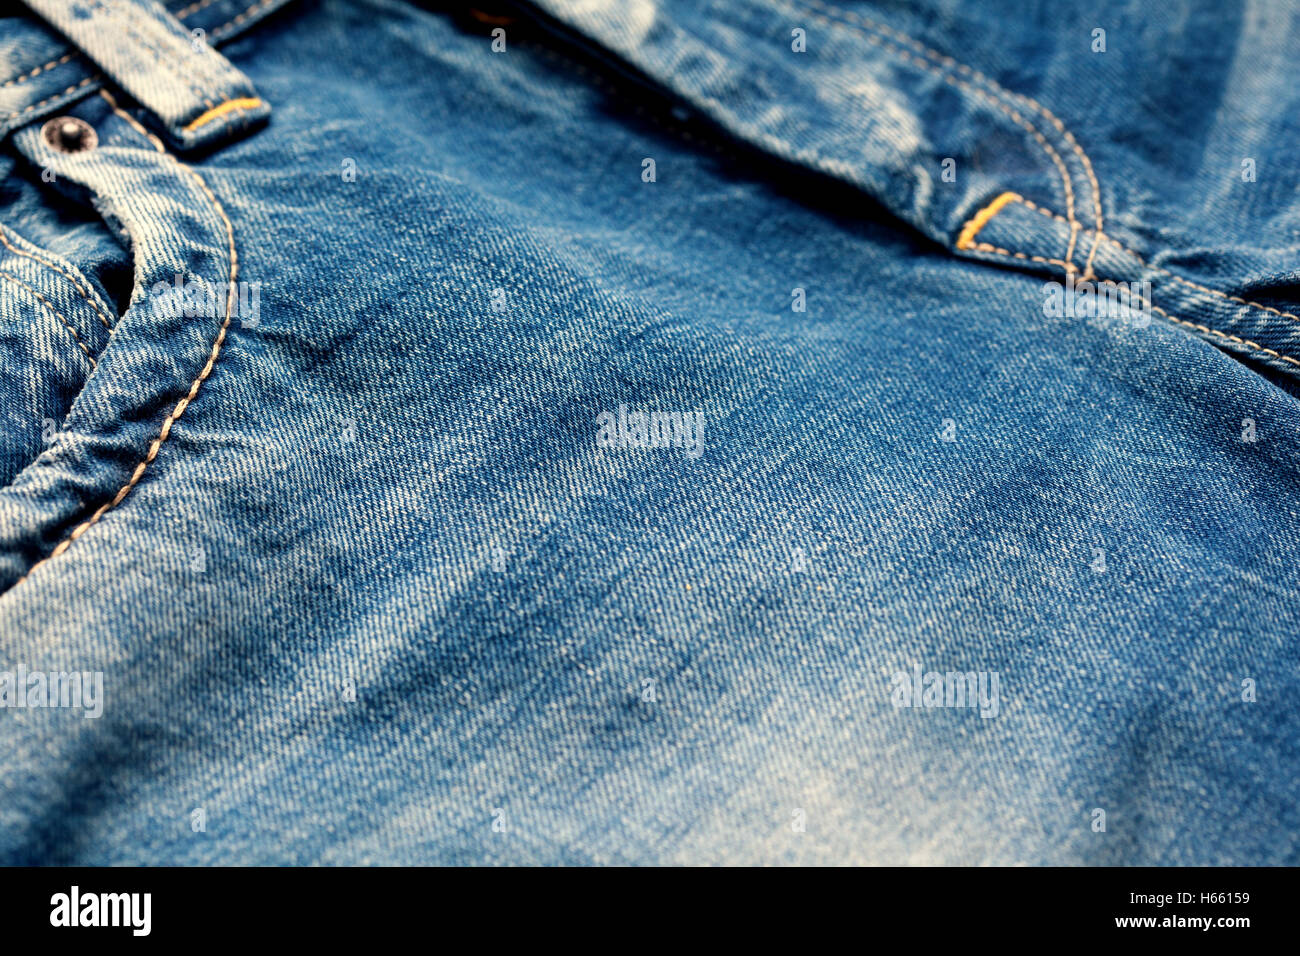 Close-up of denim jeans - Stock Image